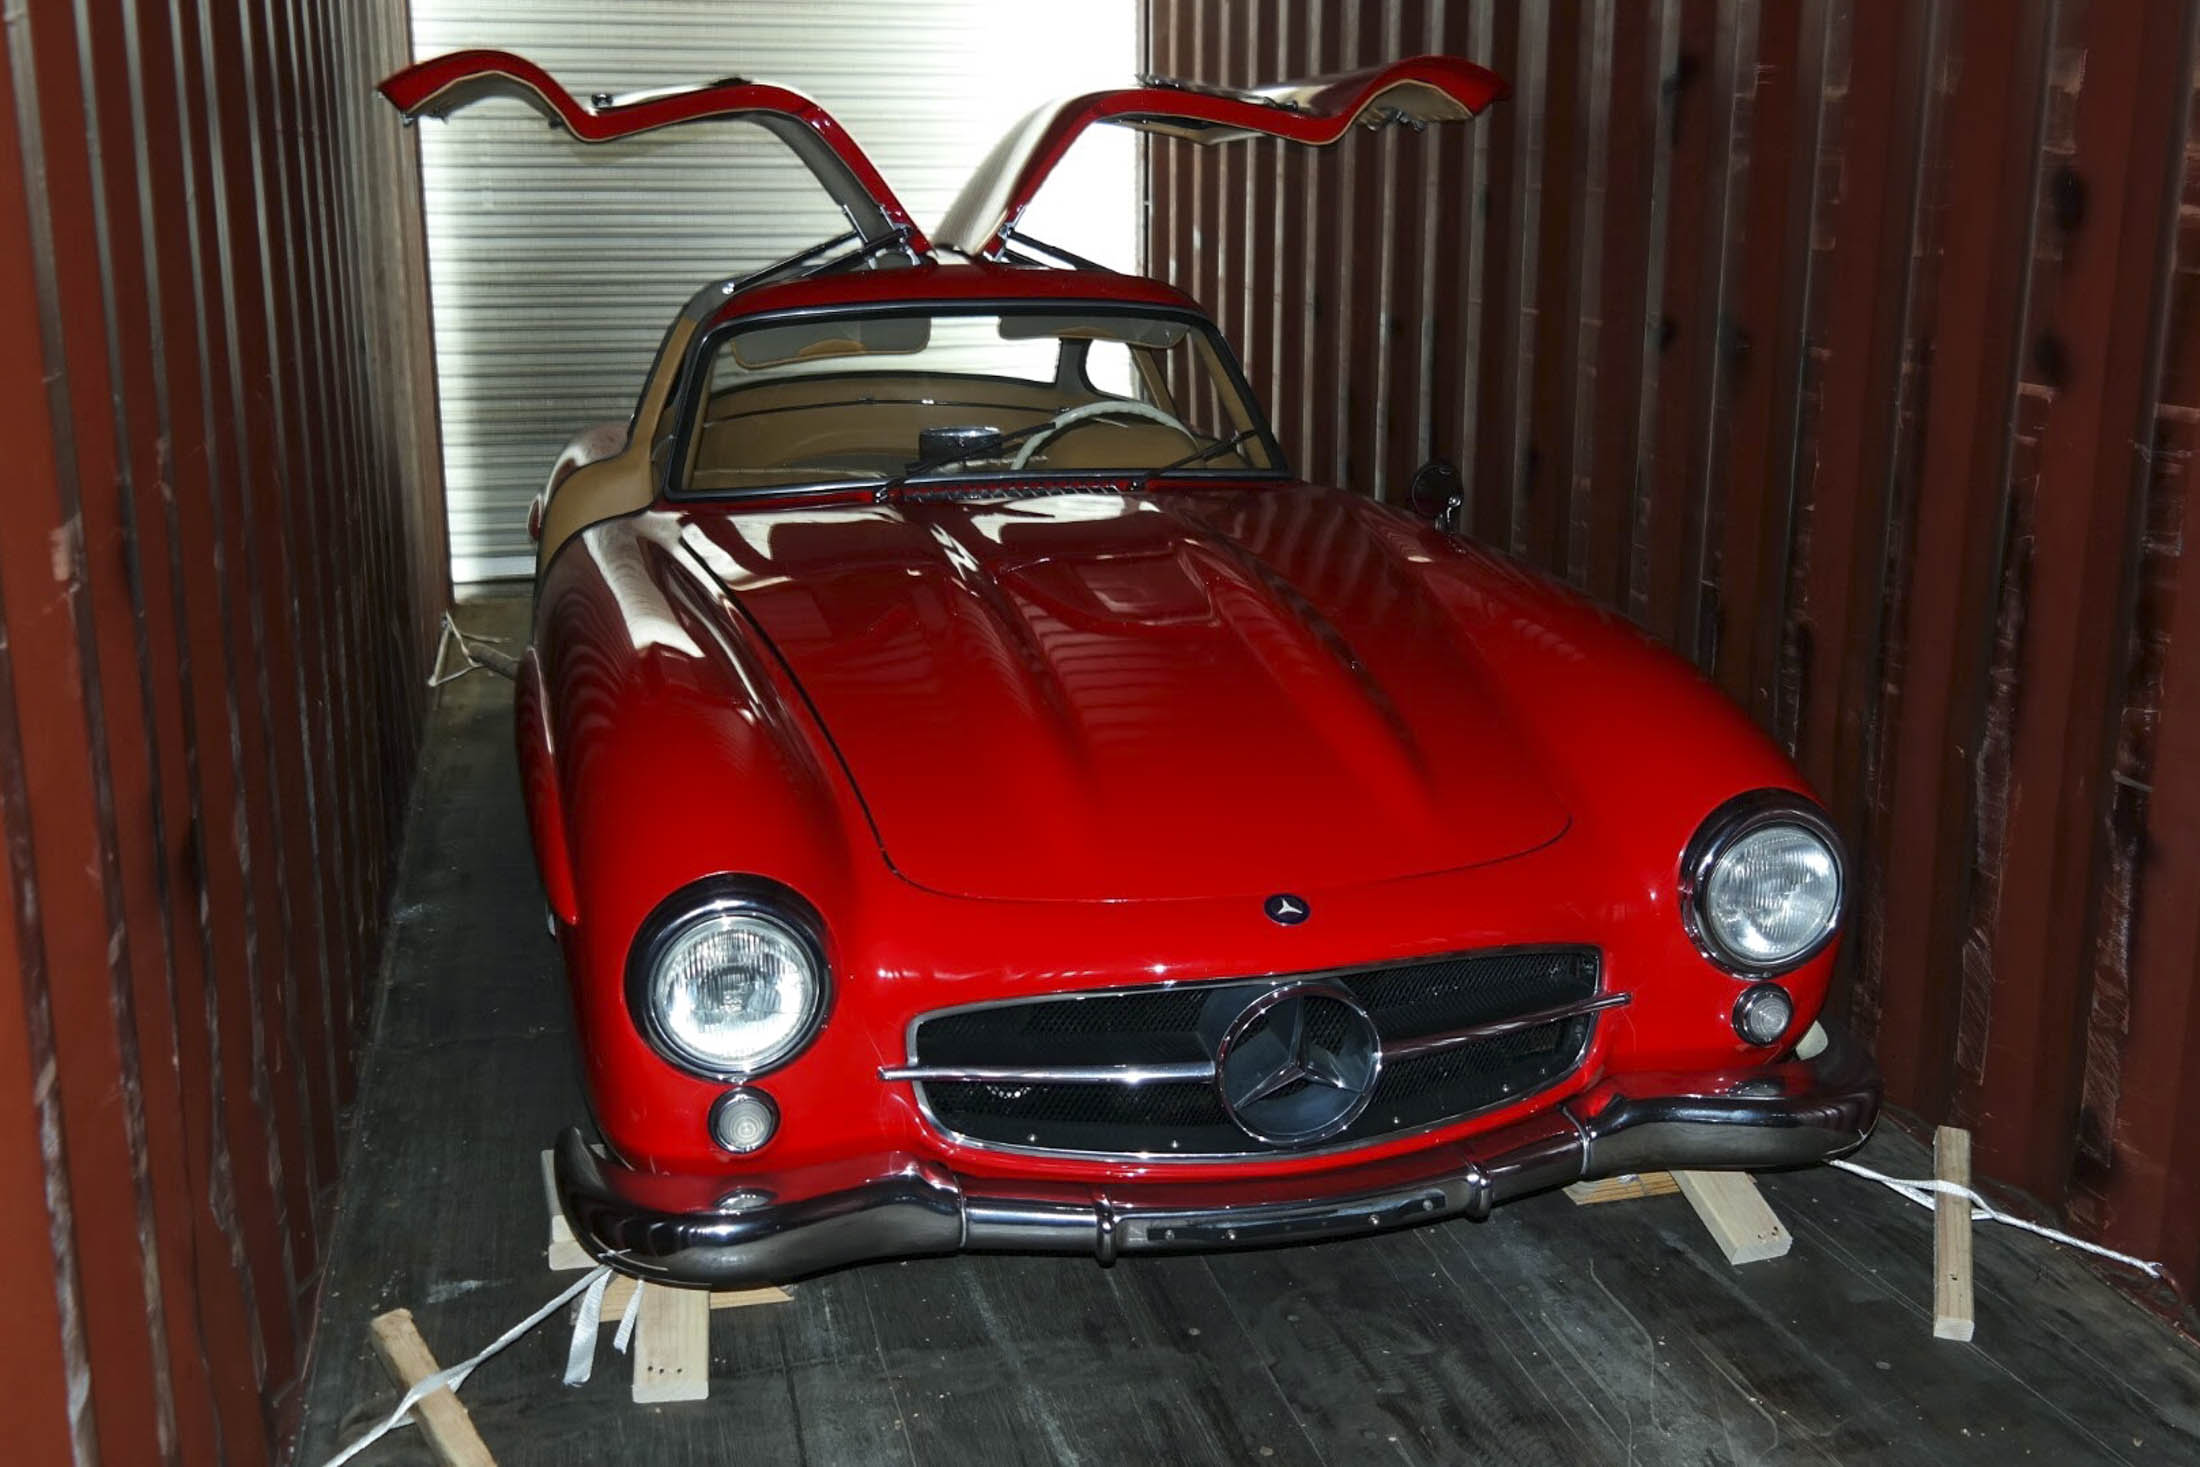 A Mercedes 300SL Gullwing in a shipping container, demonstrating clearance along the side and roof. Photographer: Dmitriy Shibarshin